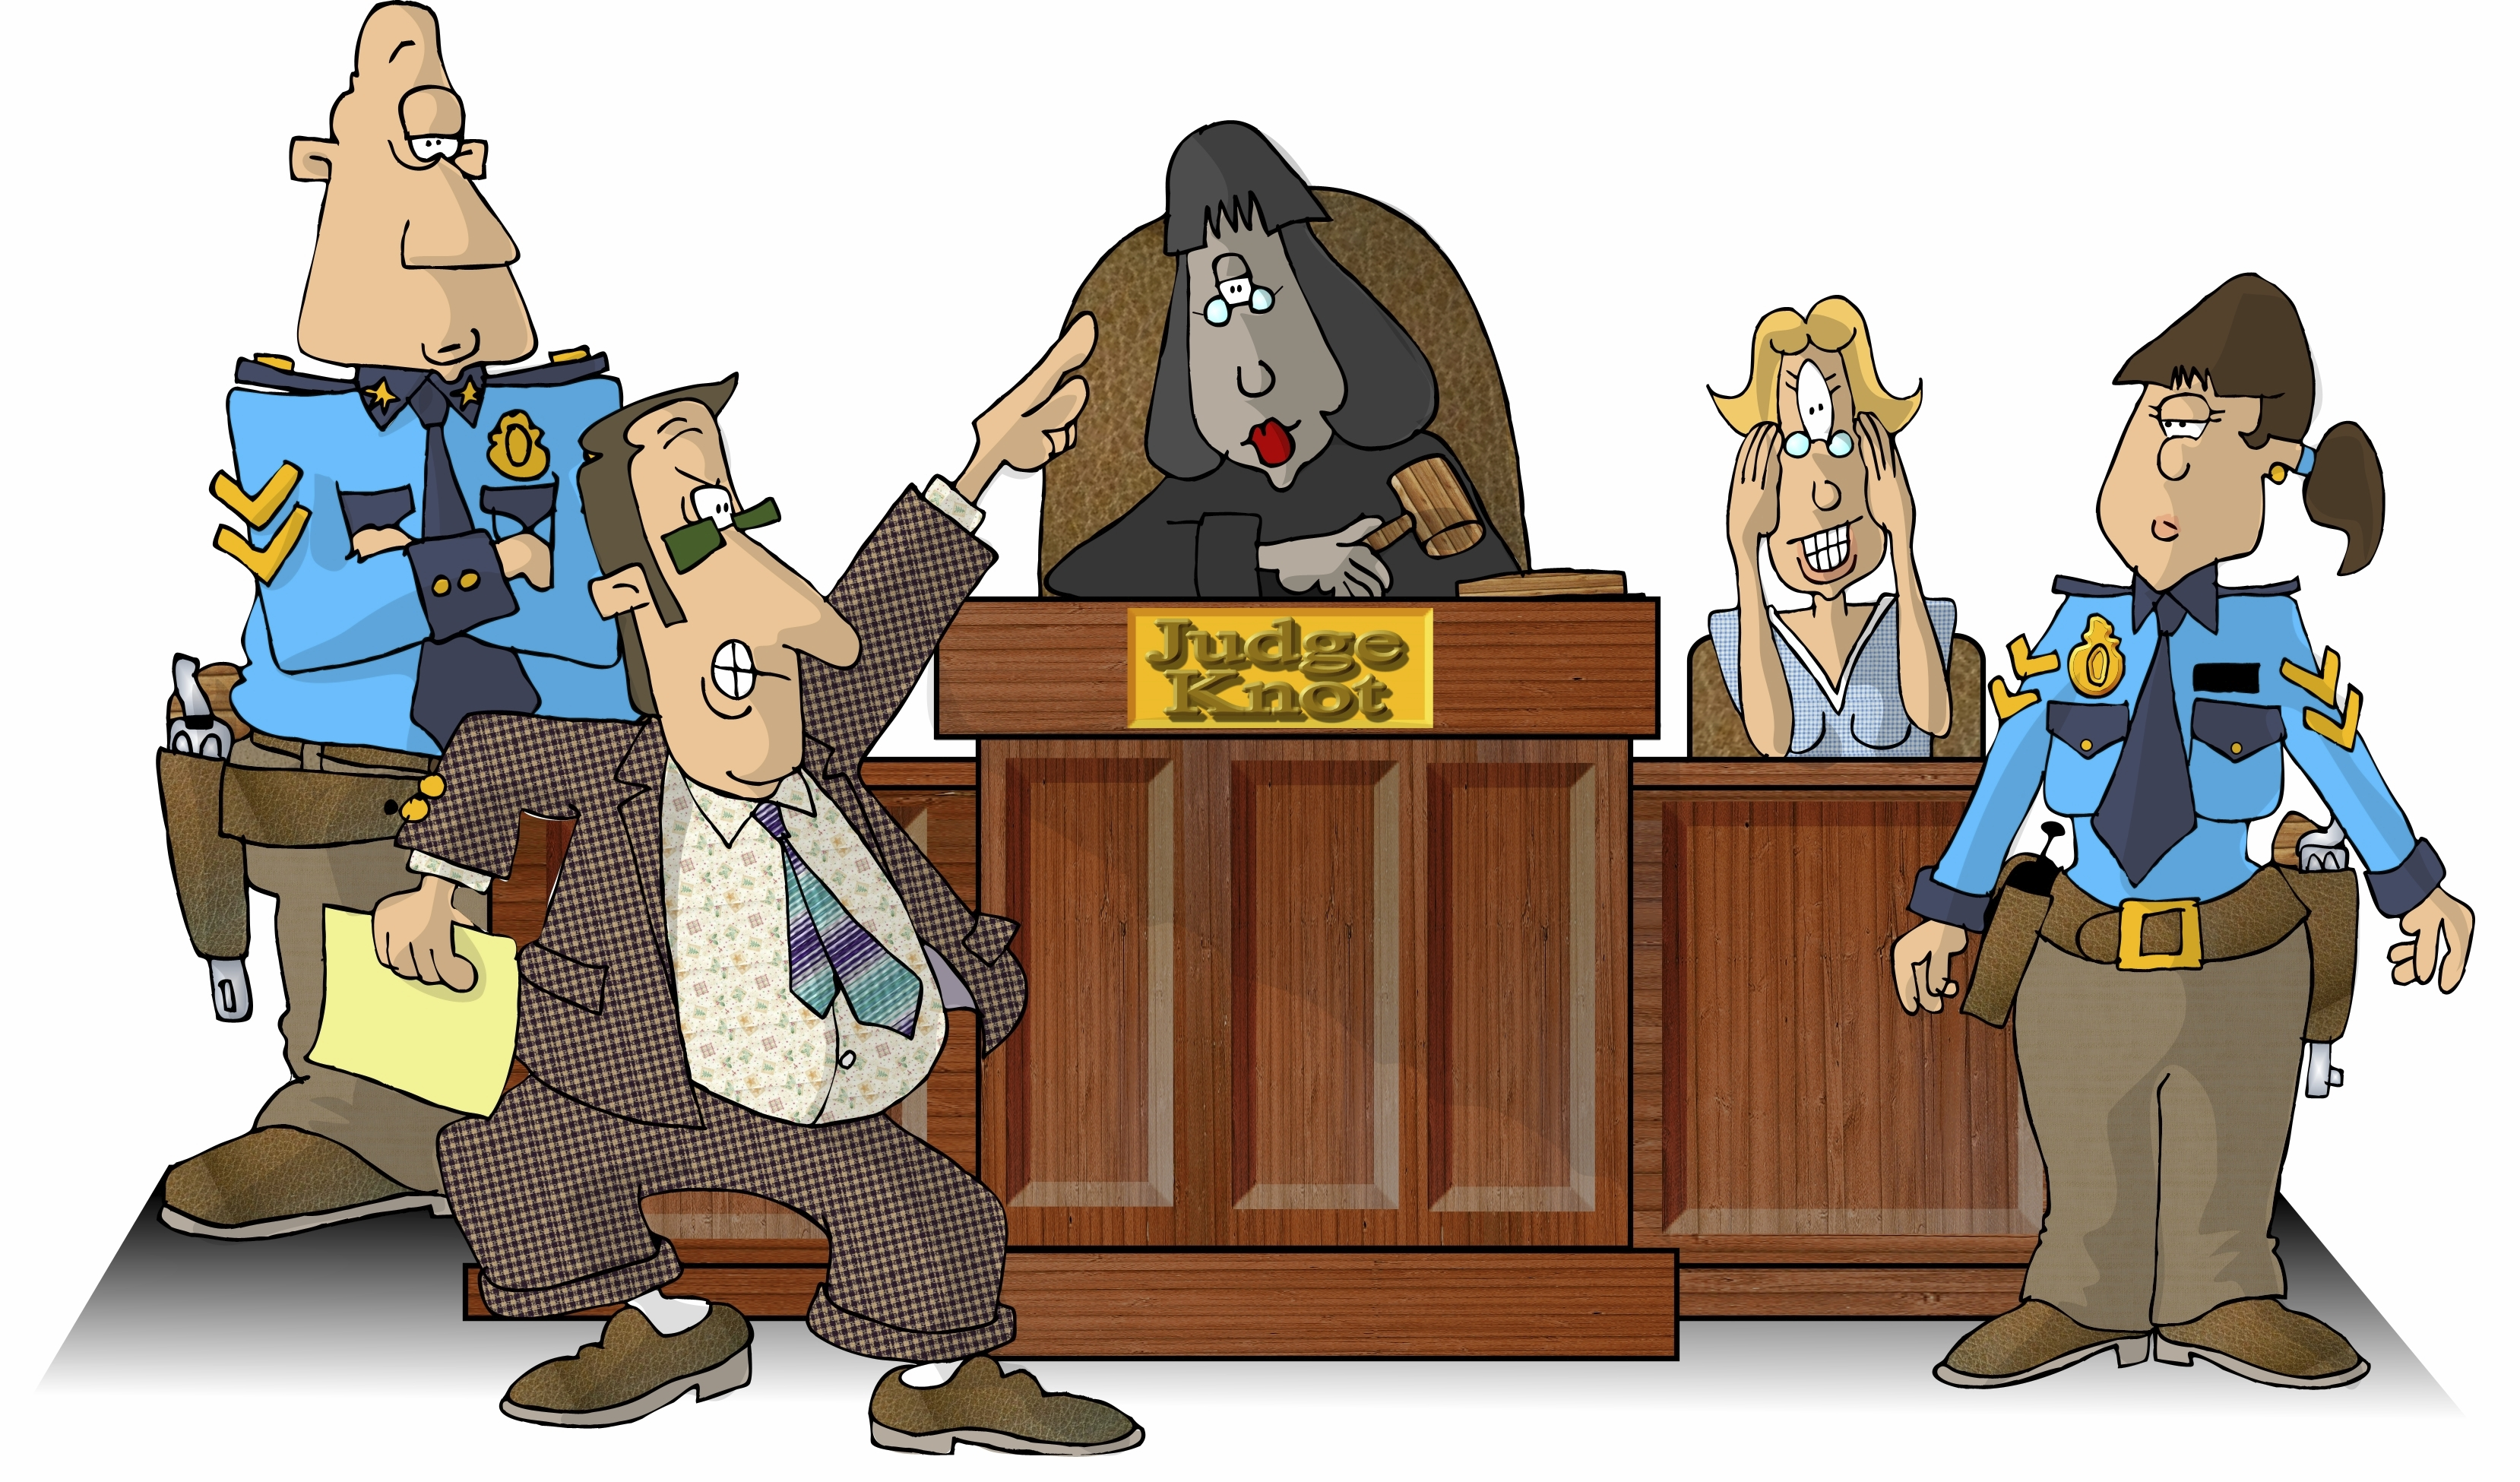 Judge clipart court scene, Judge court scene Transparent.